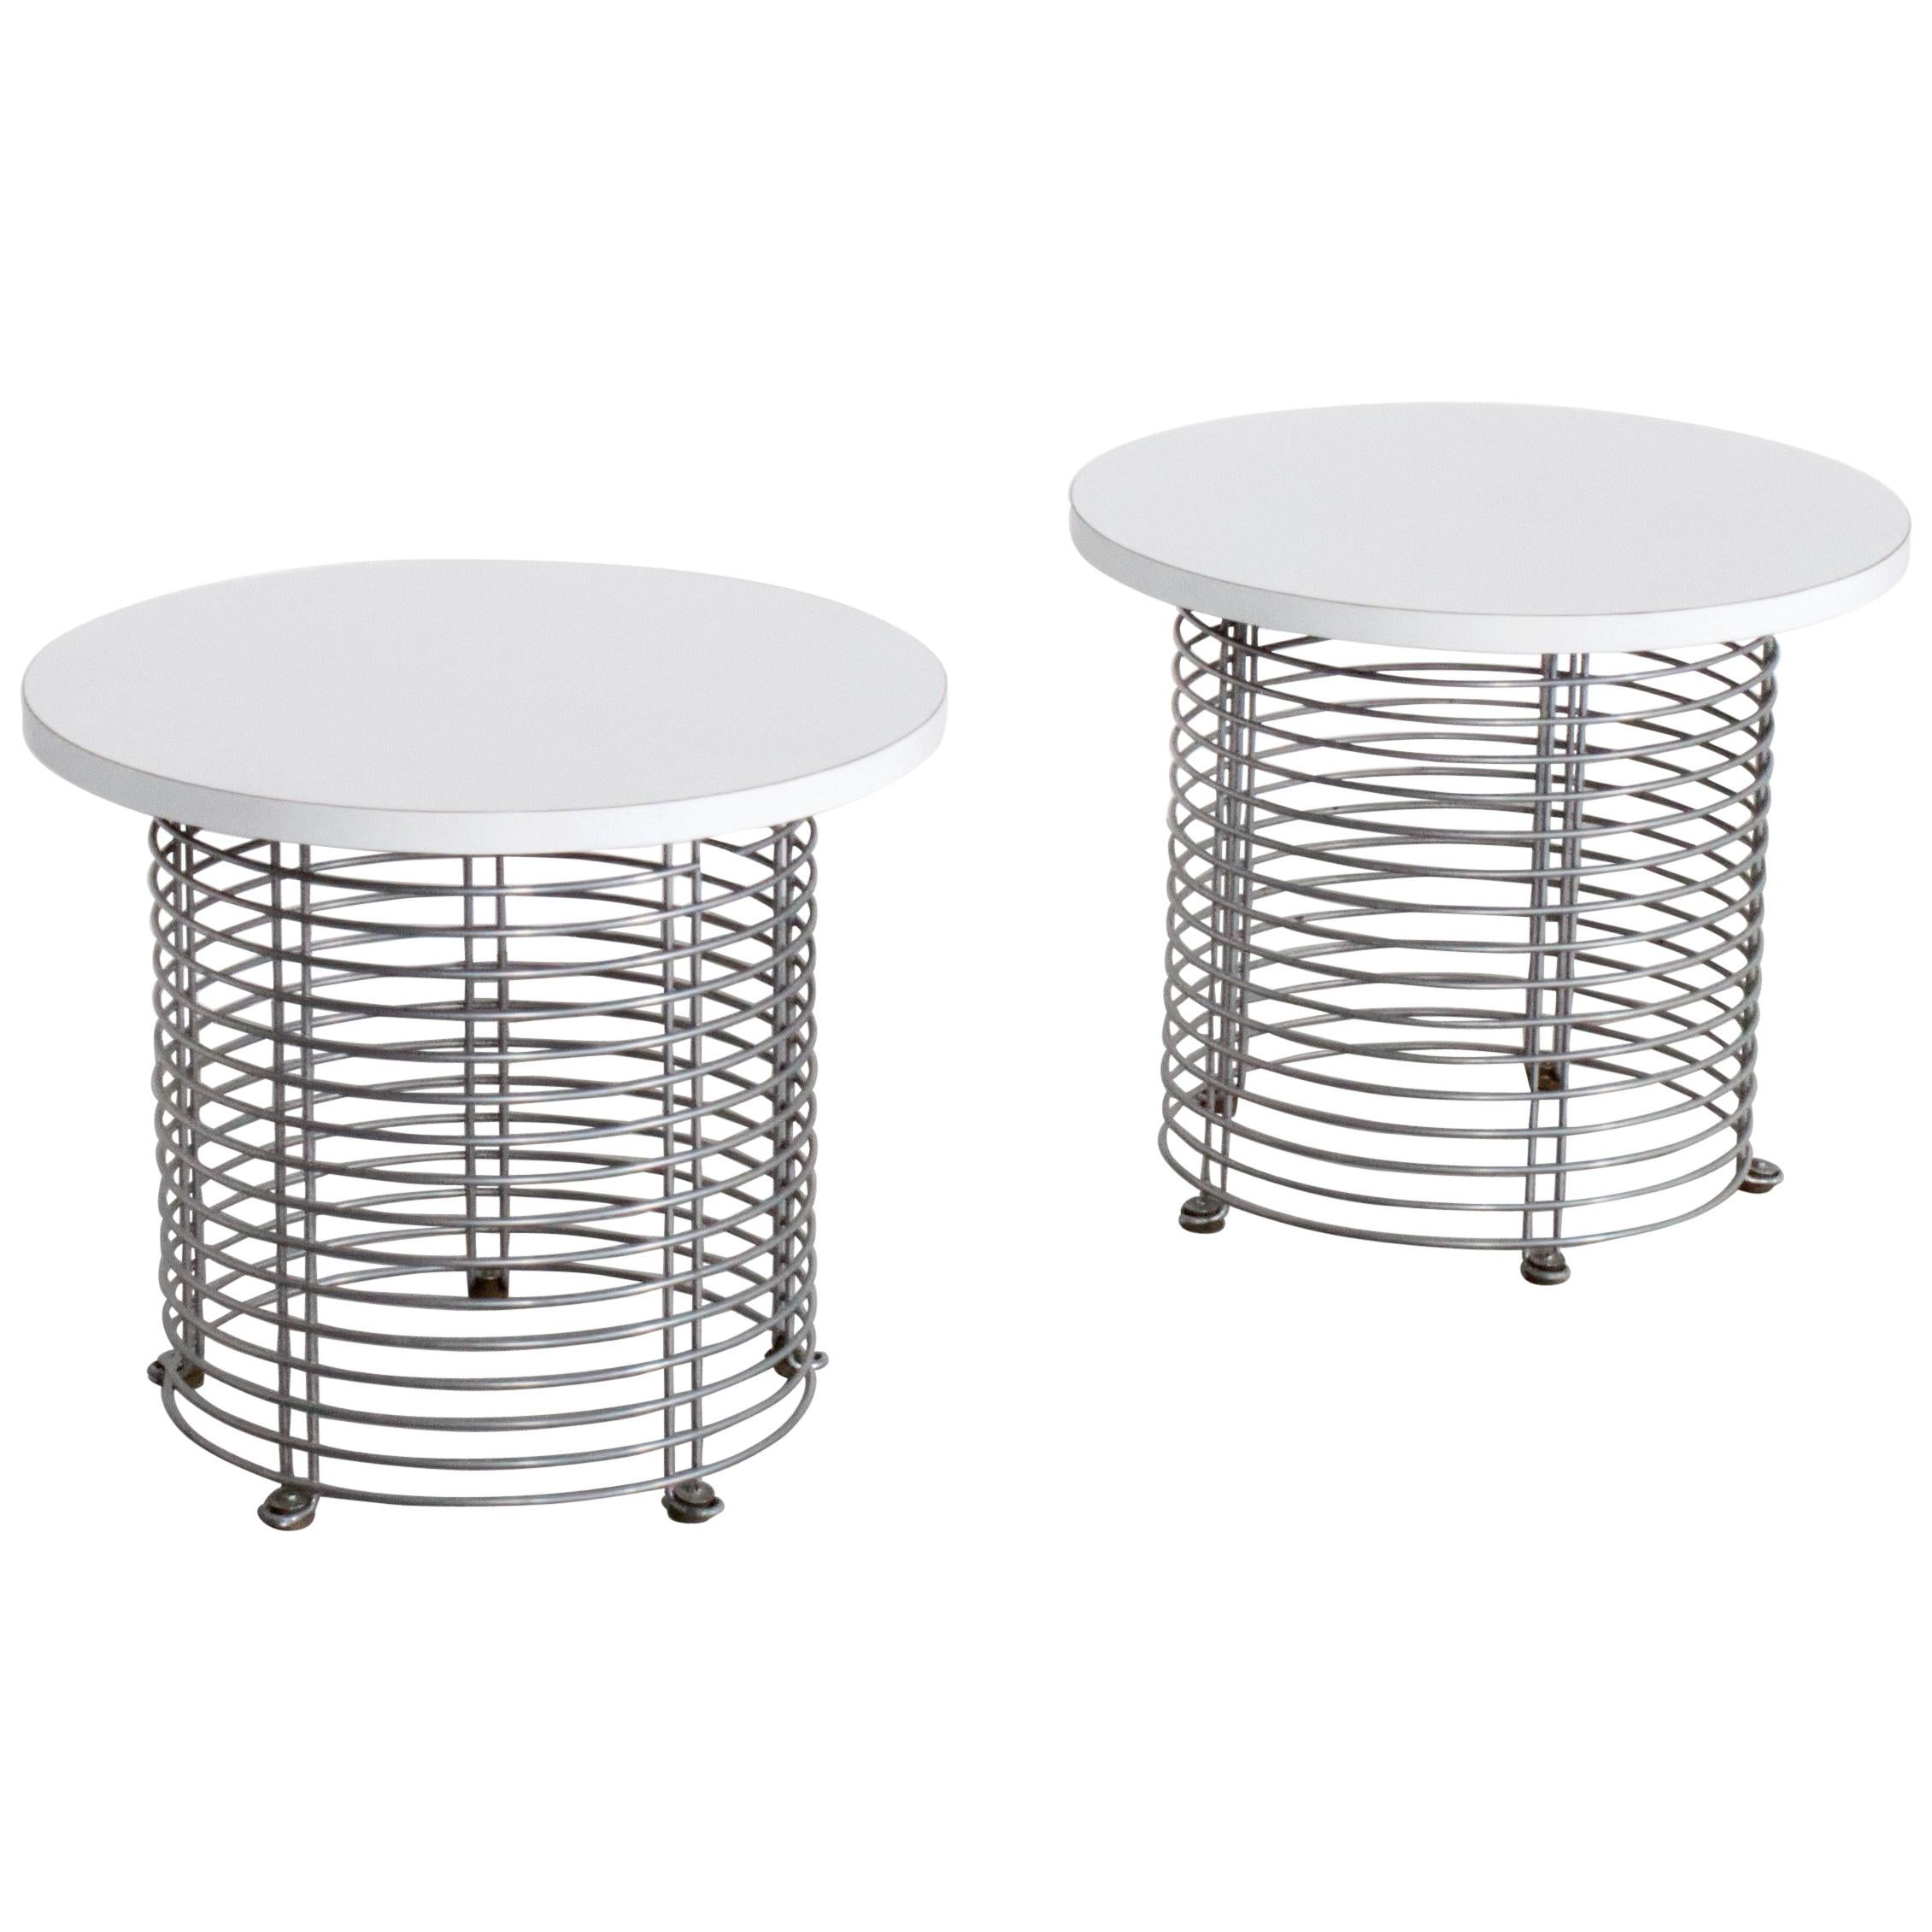 Set Of Two U0027Pantonovau0027 Wire Tables By Verner Panton For Fritz Hansen, 1971